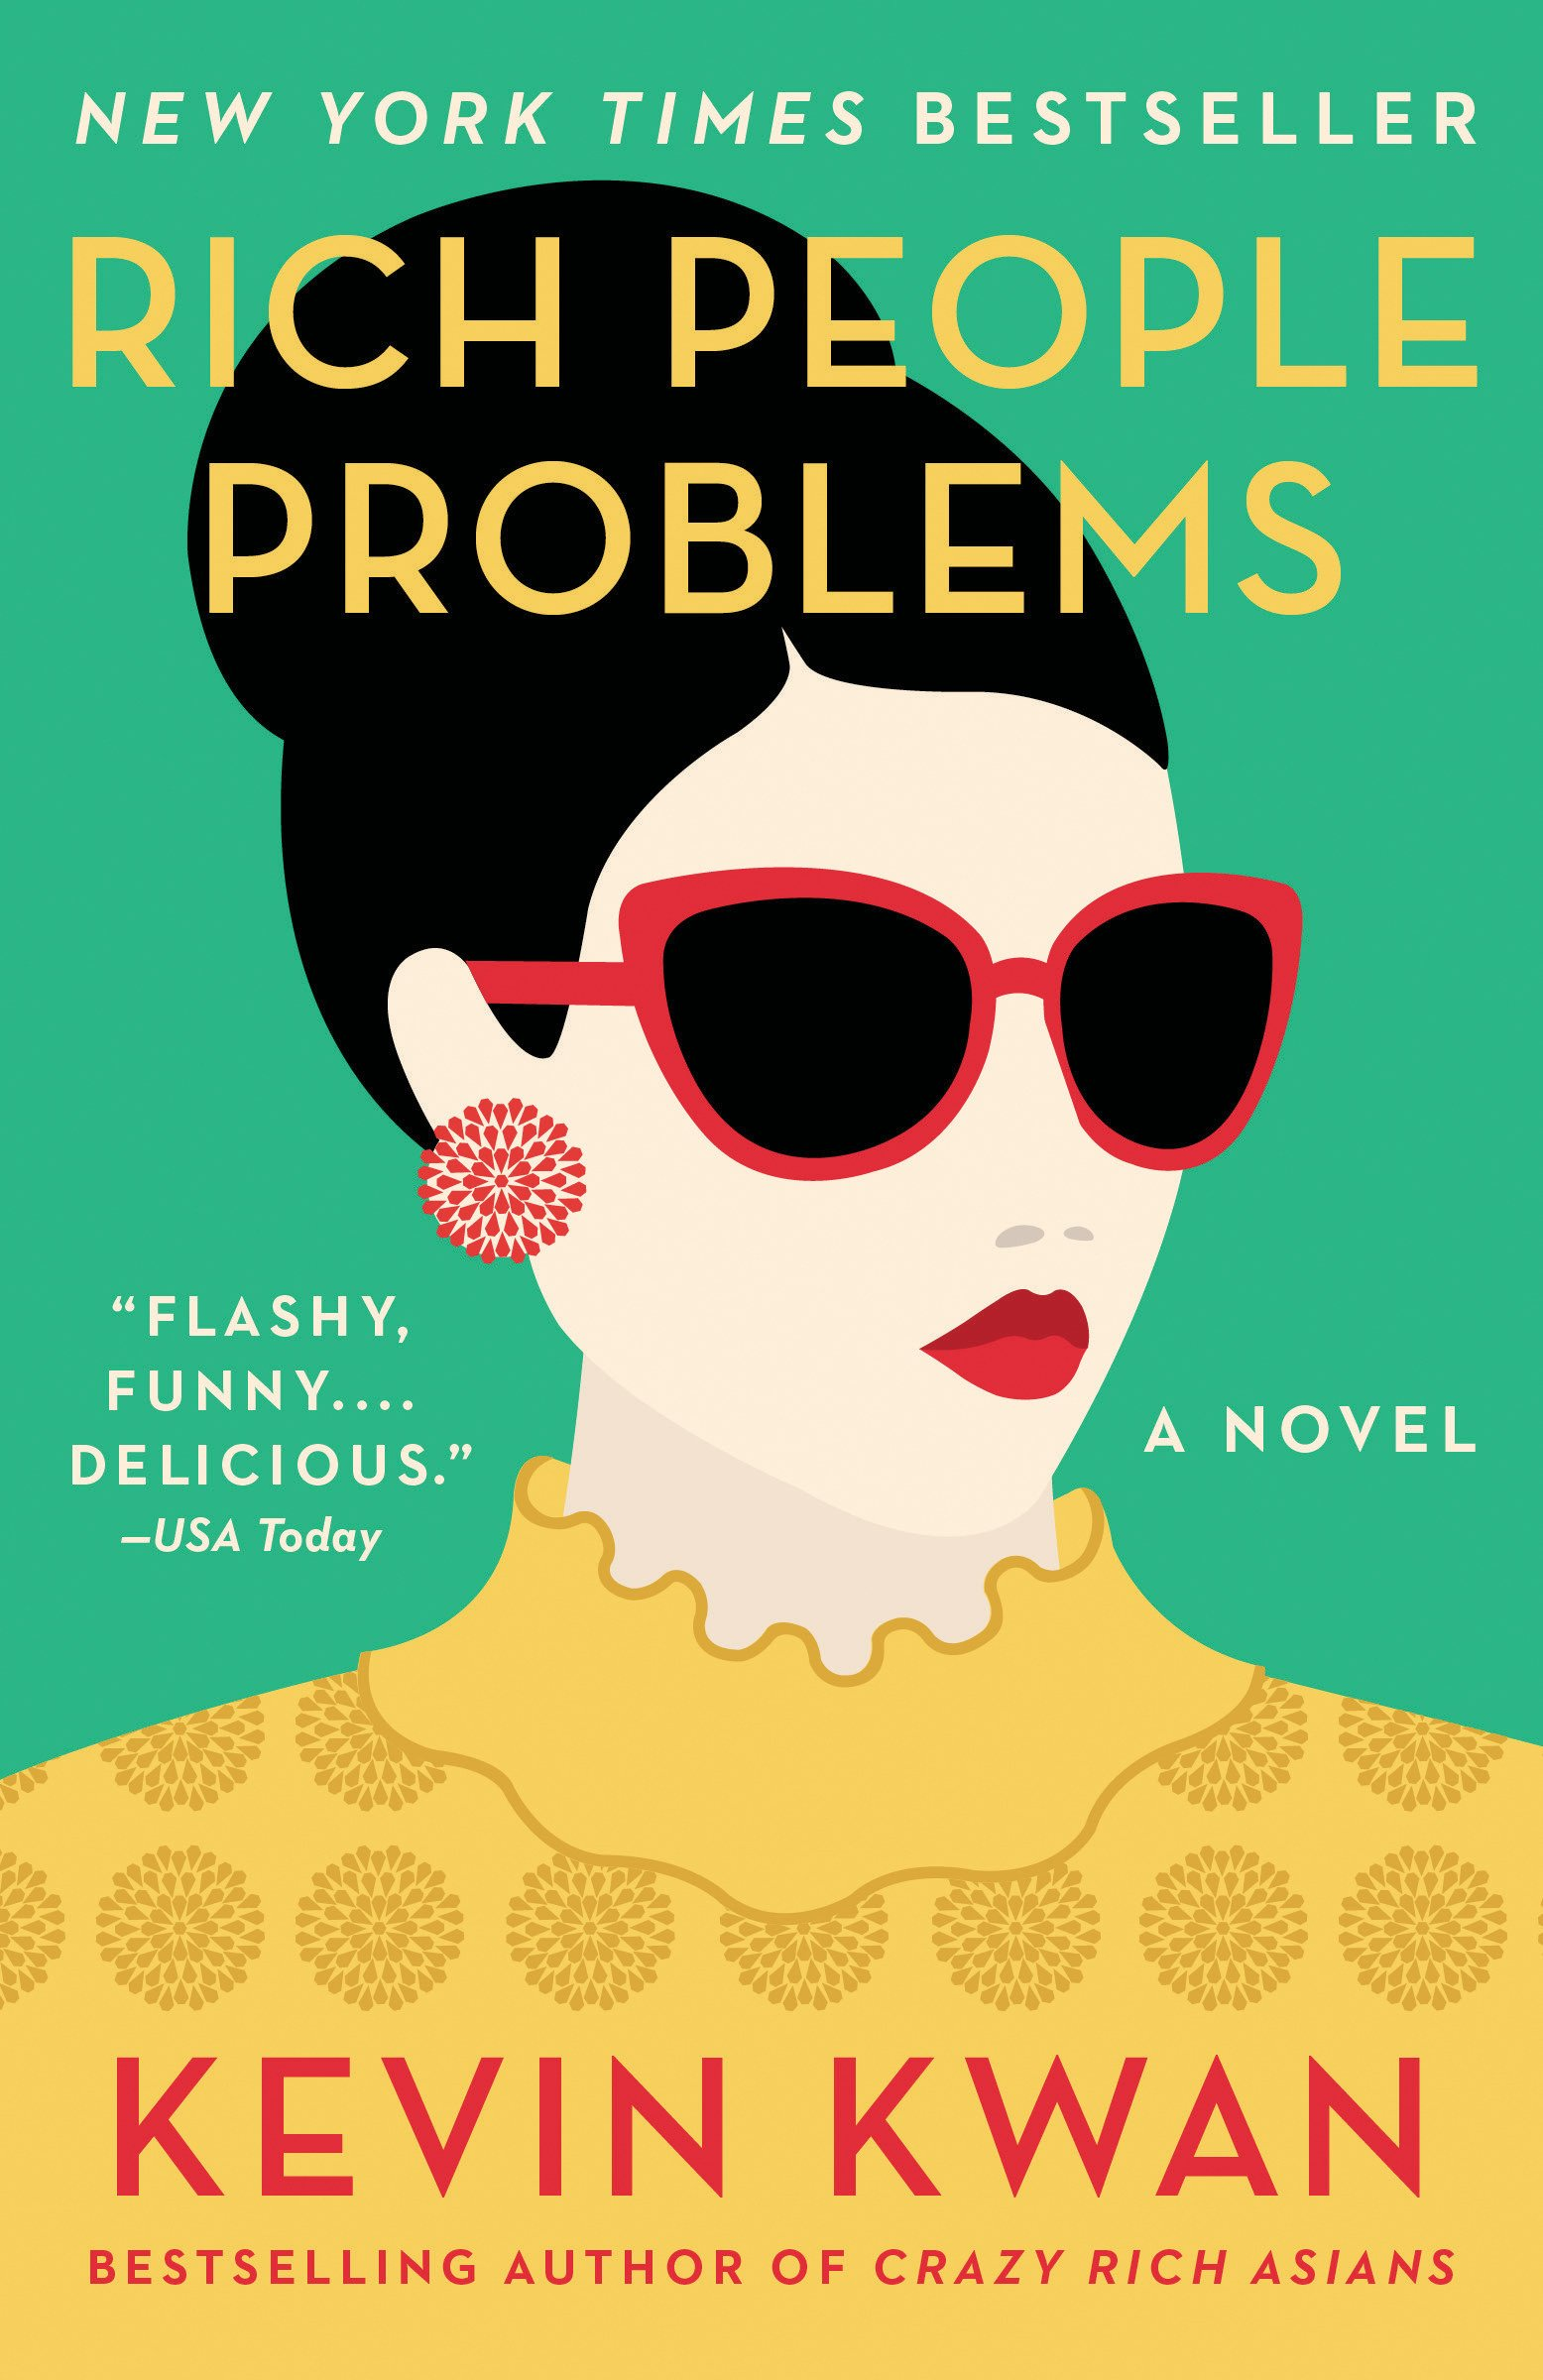 Rich People Problems: A Novel: Kwan, Kevin: 9780385689403: Books - Amazon.ca